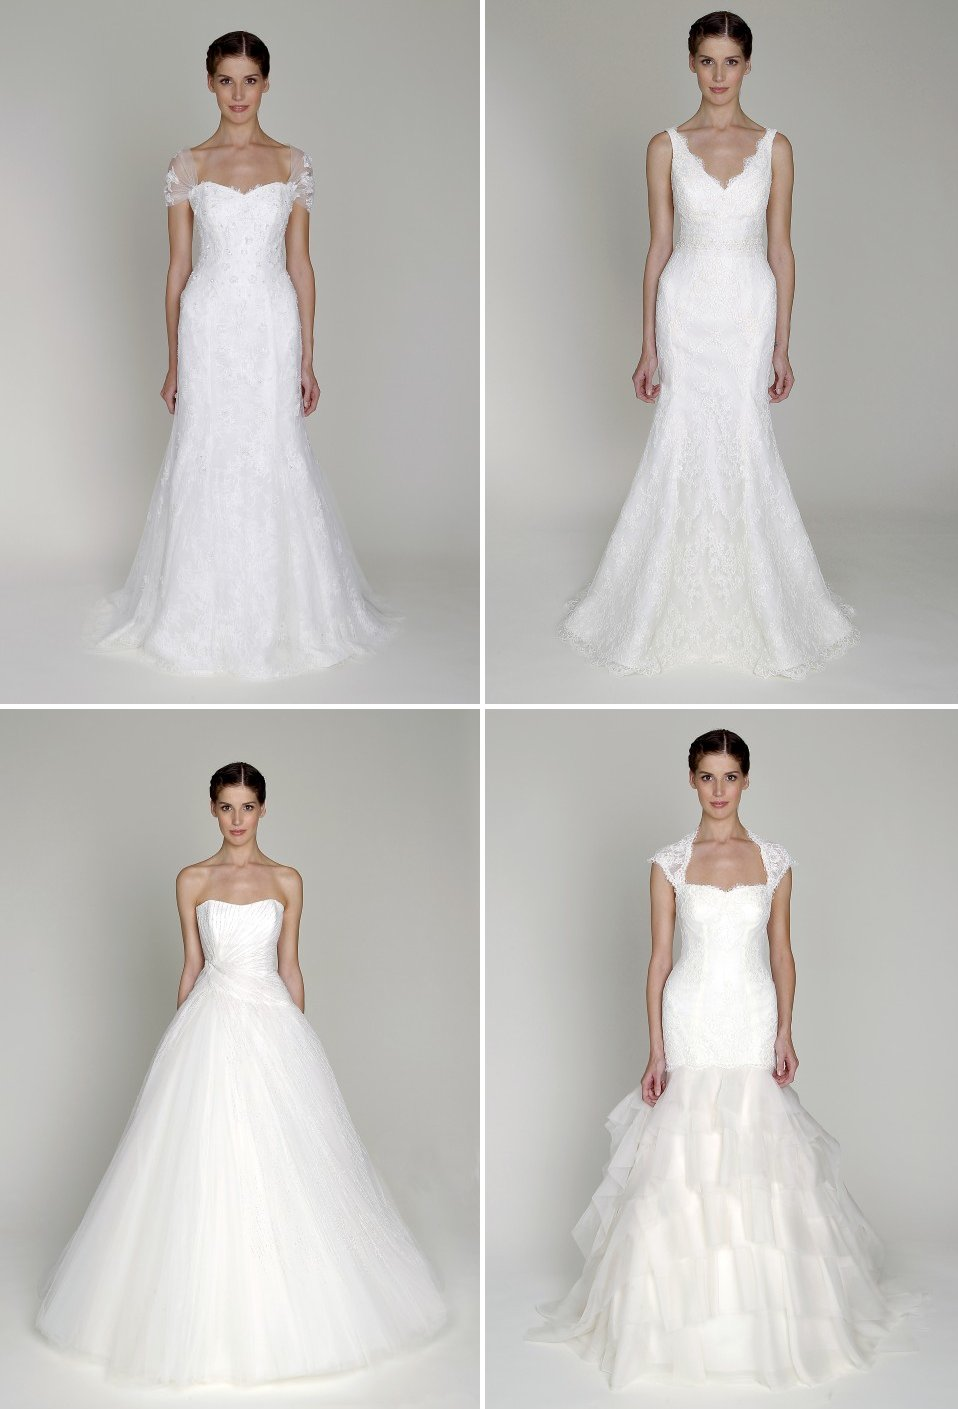 Affordable-designer-bridal-gowns-bliss-by-monique-lhuillier-wedding-dress-3.full